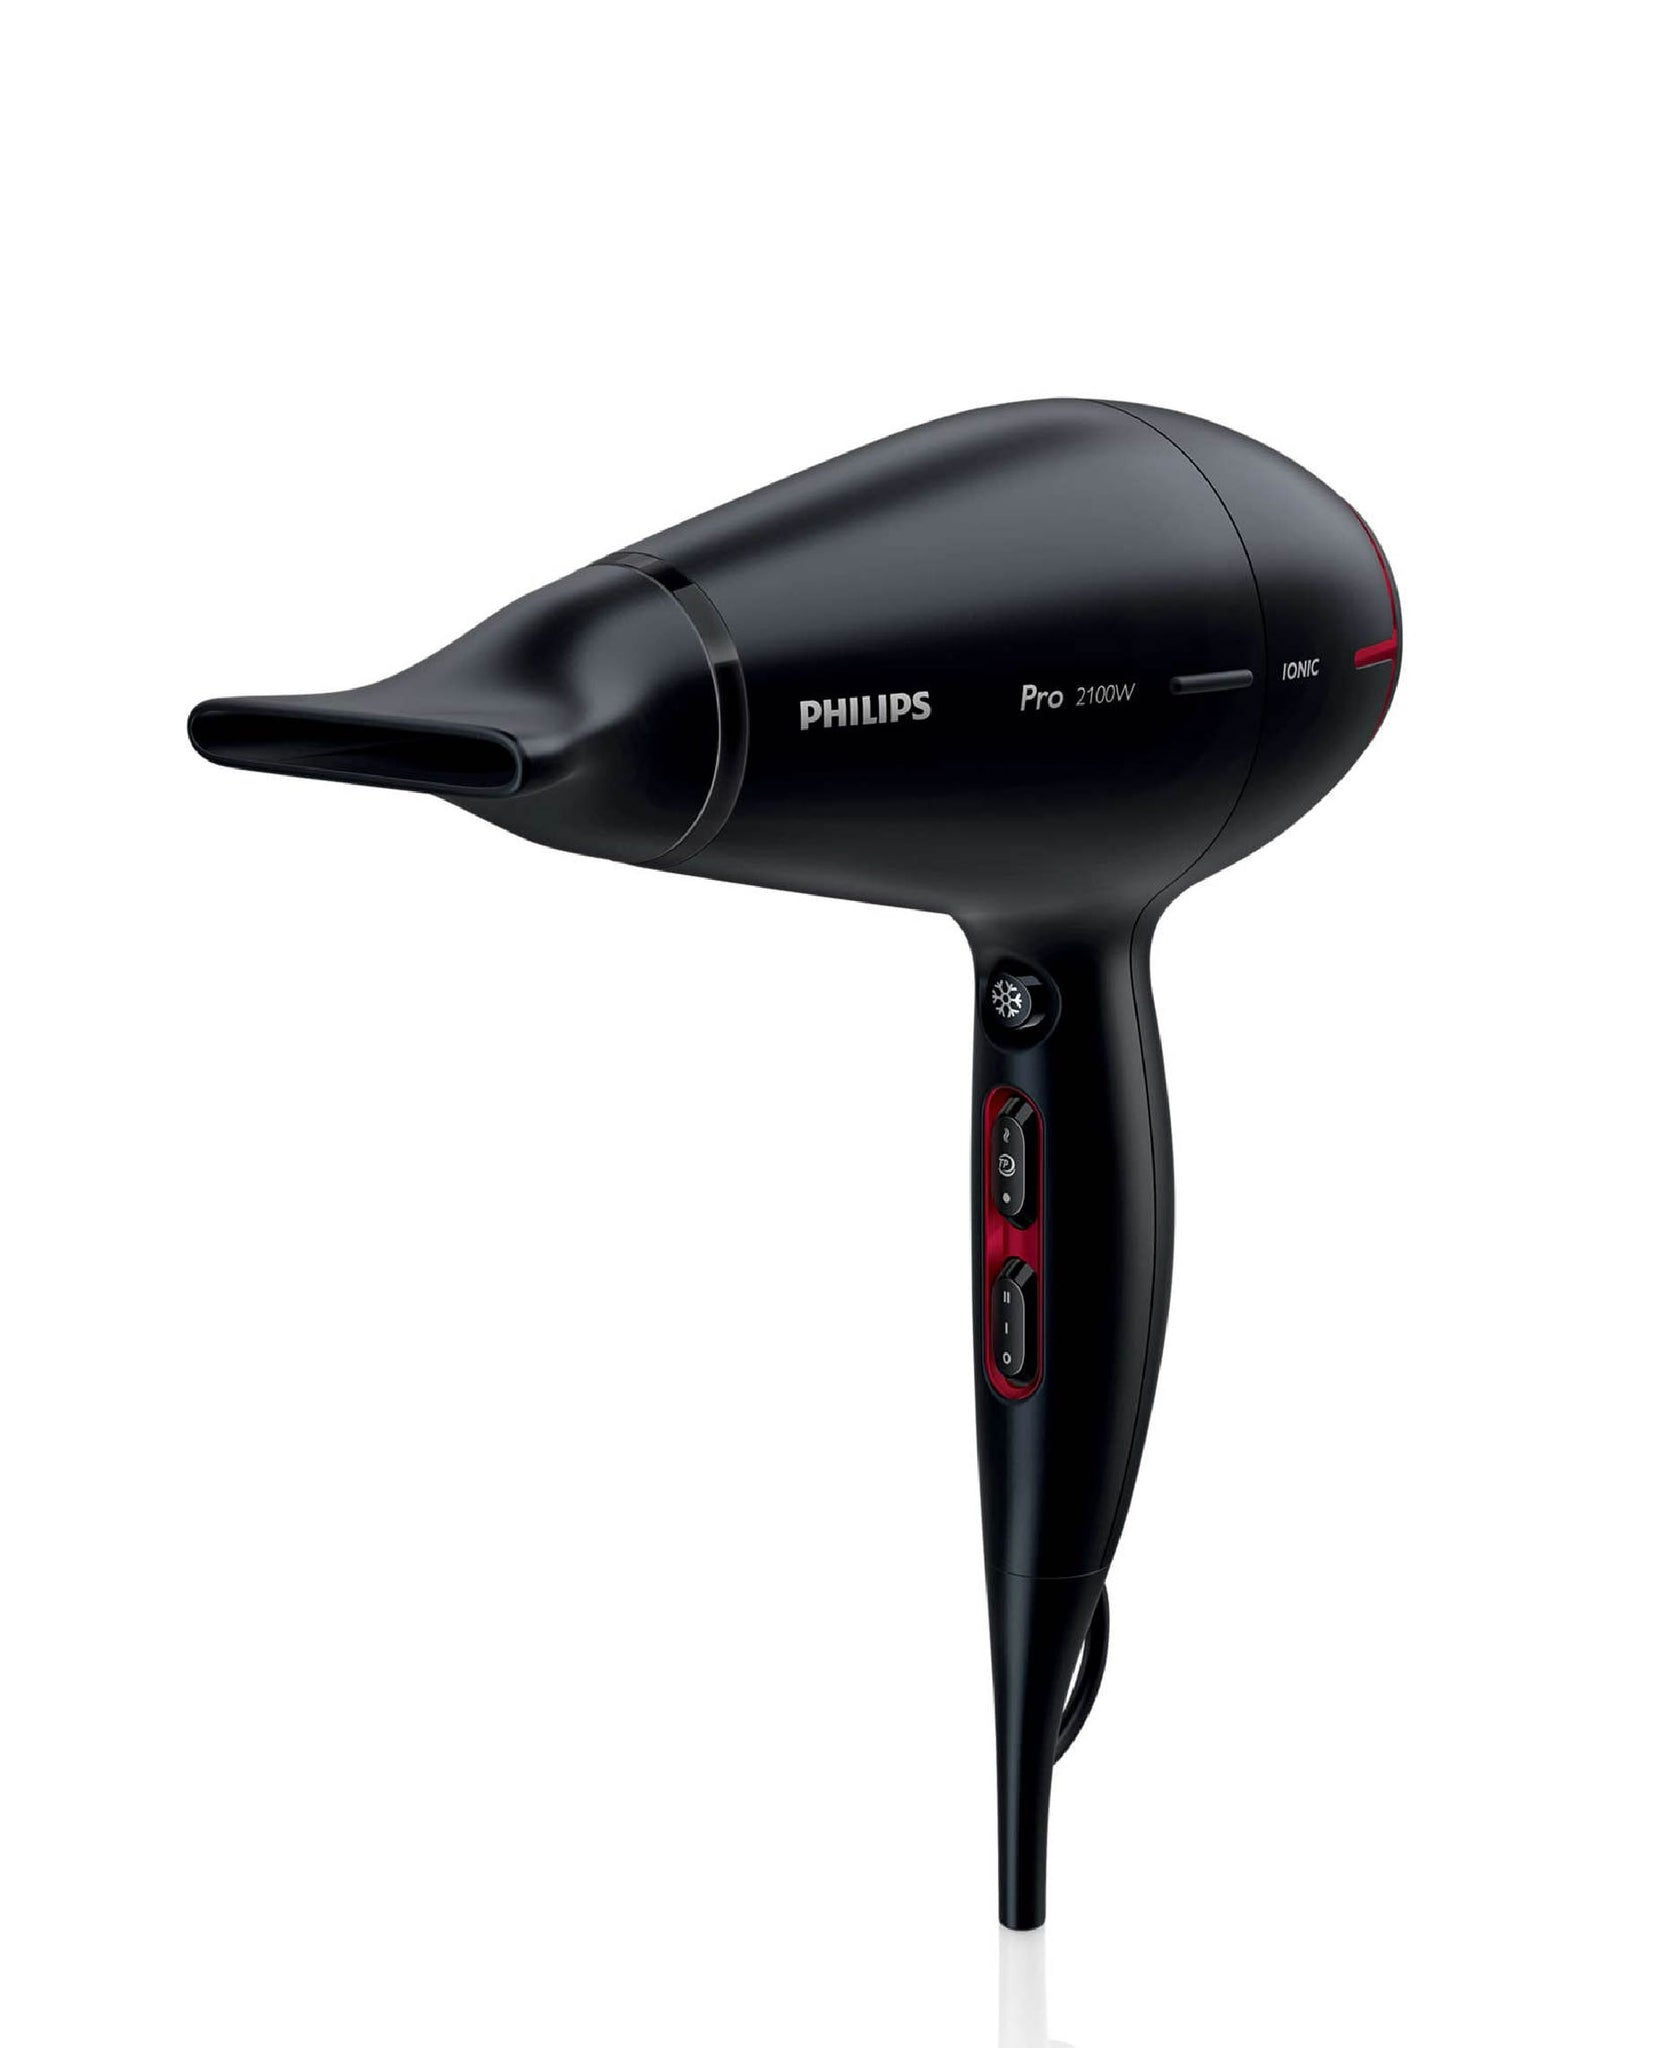 Philips Hair Dryer Pro Dryer - HPS910/03